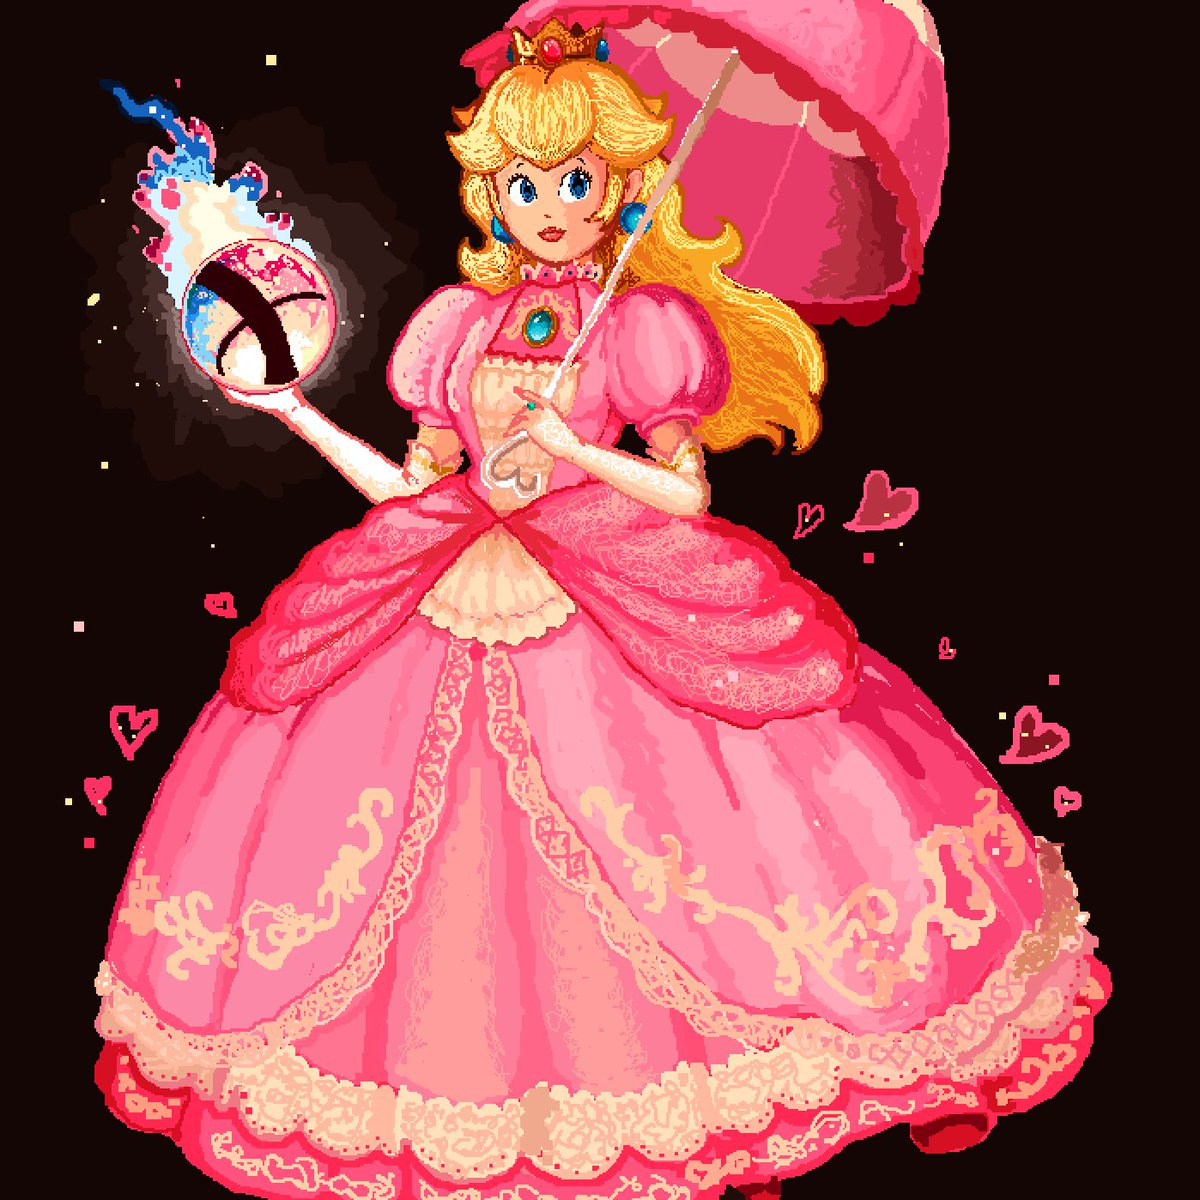 Pixilart On Twitter Super Smash Bros Ultimate Princess